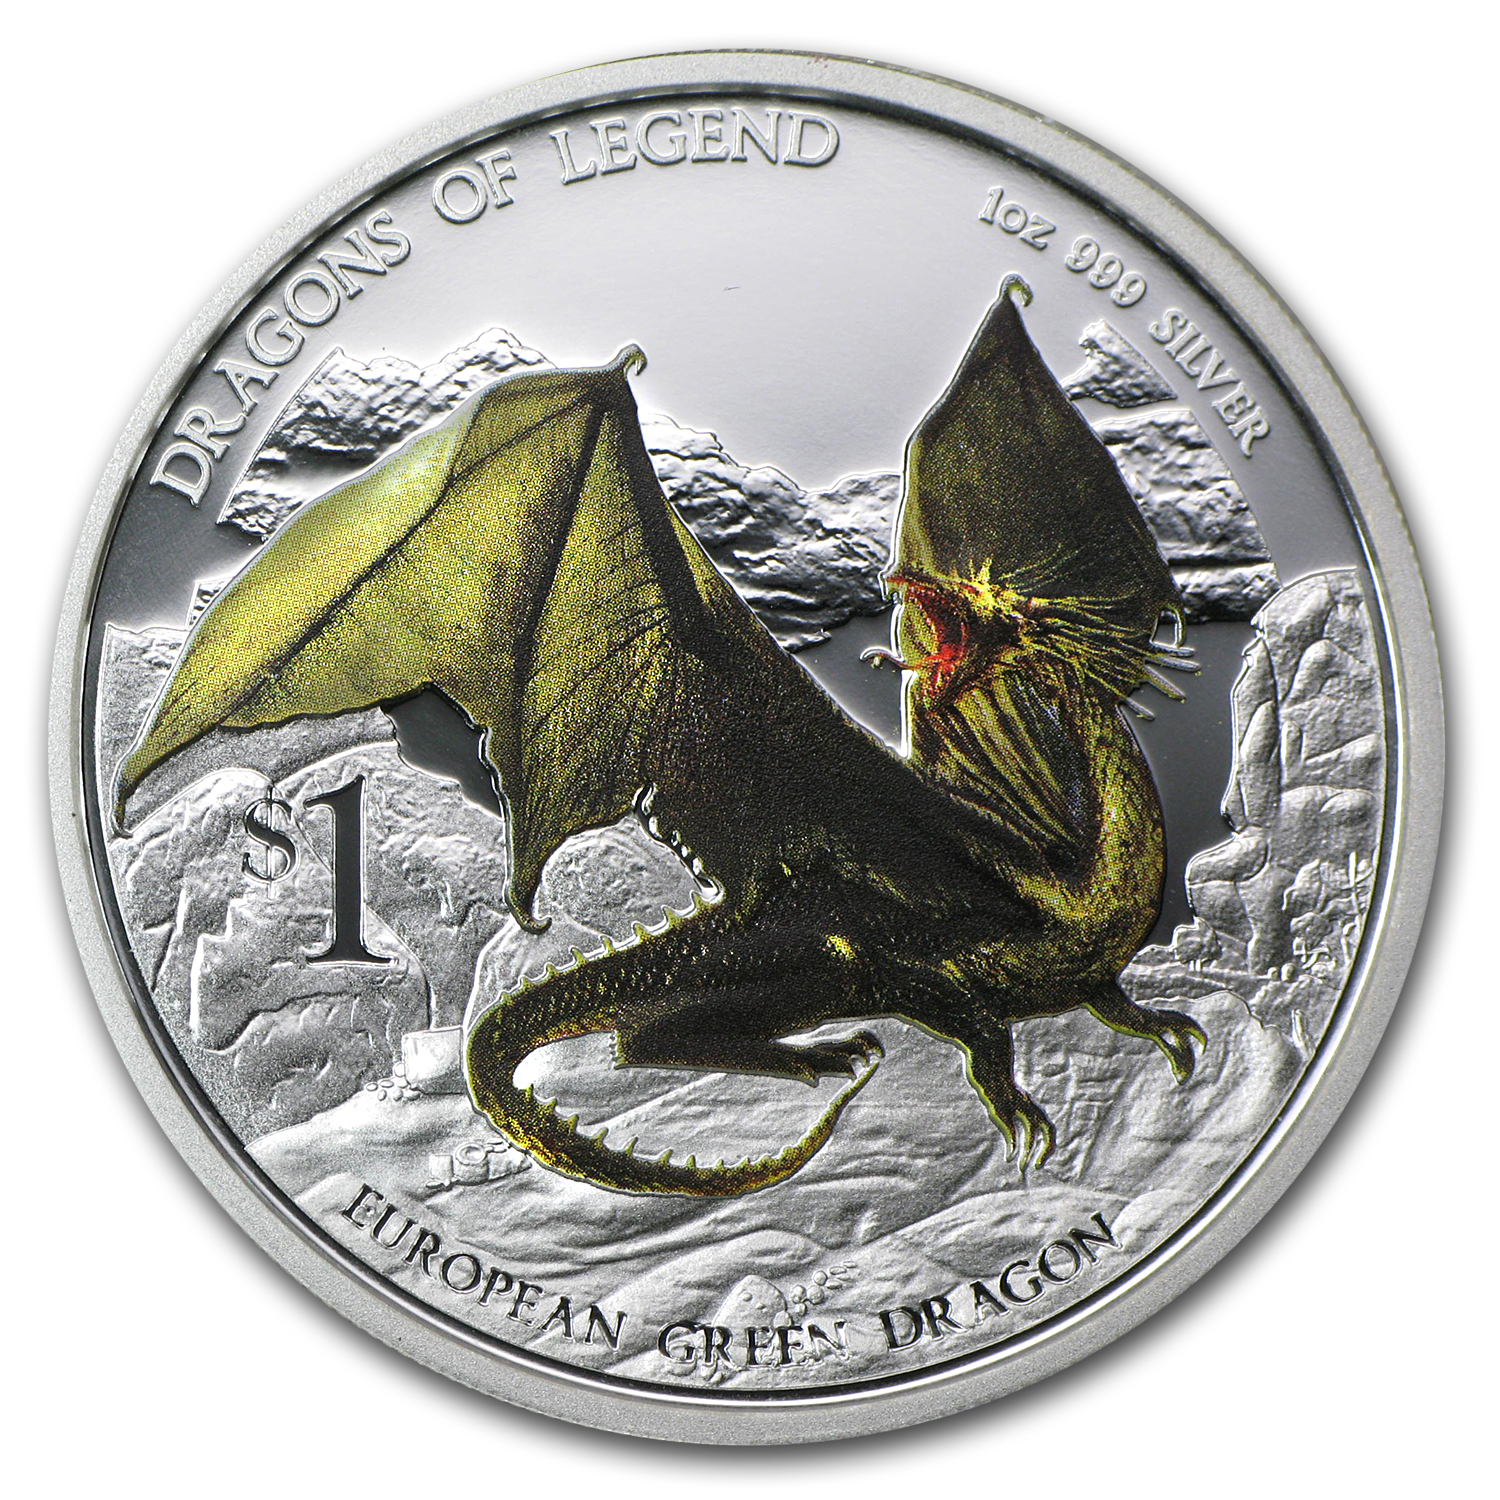 2013 1 oz Silver Dragons of Legend Proof (European Green Dragon)